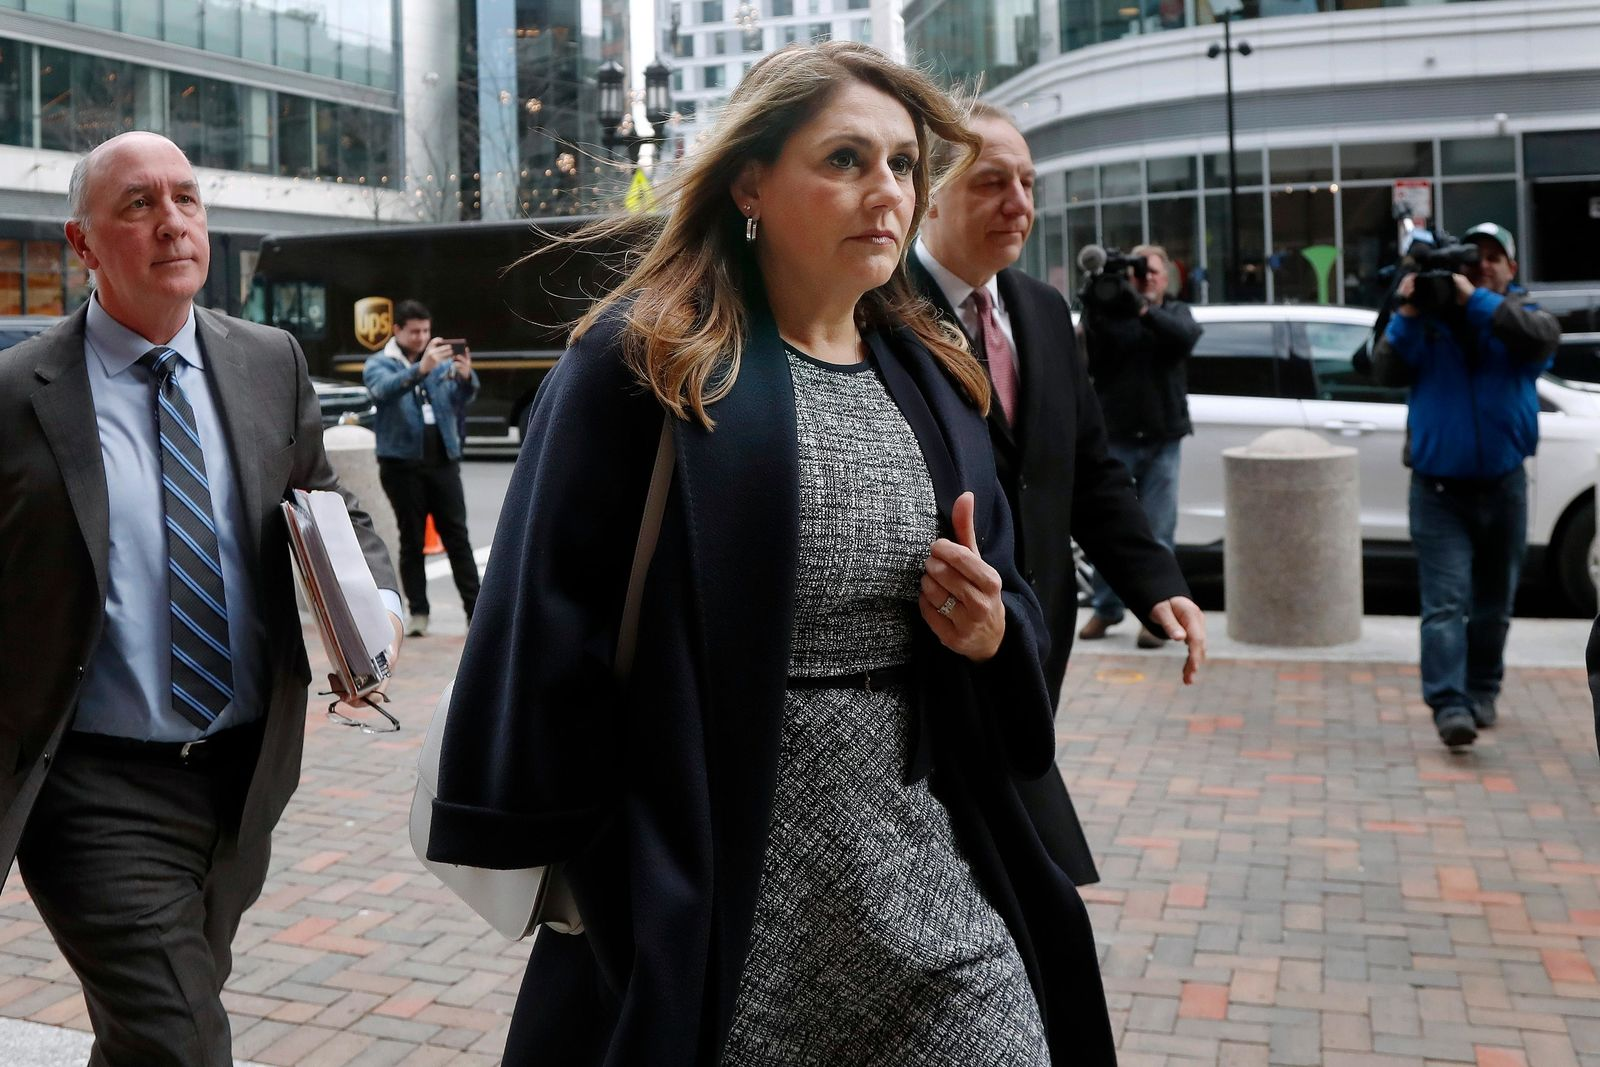 Michelle Janavs arrives at federal court, Tuesday, Feb. 25, 2020, in Boston, for sentencing in a nationwide college admissions bribery scandal. (AP Photo/Elise Amendola)